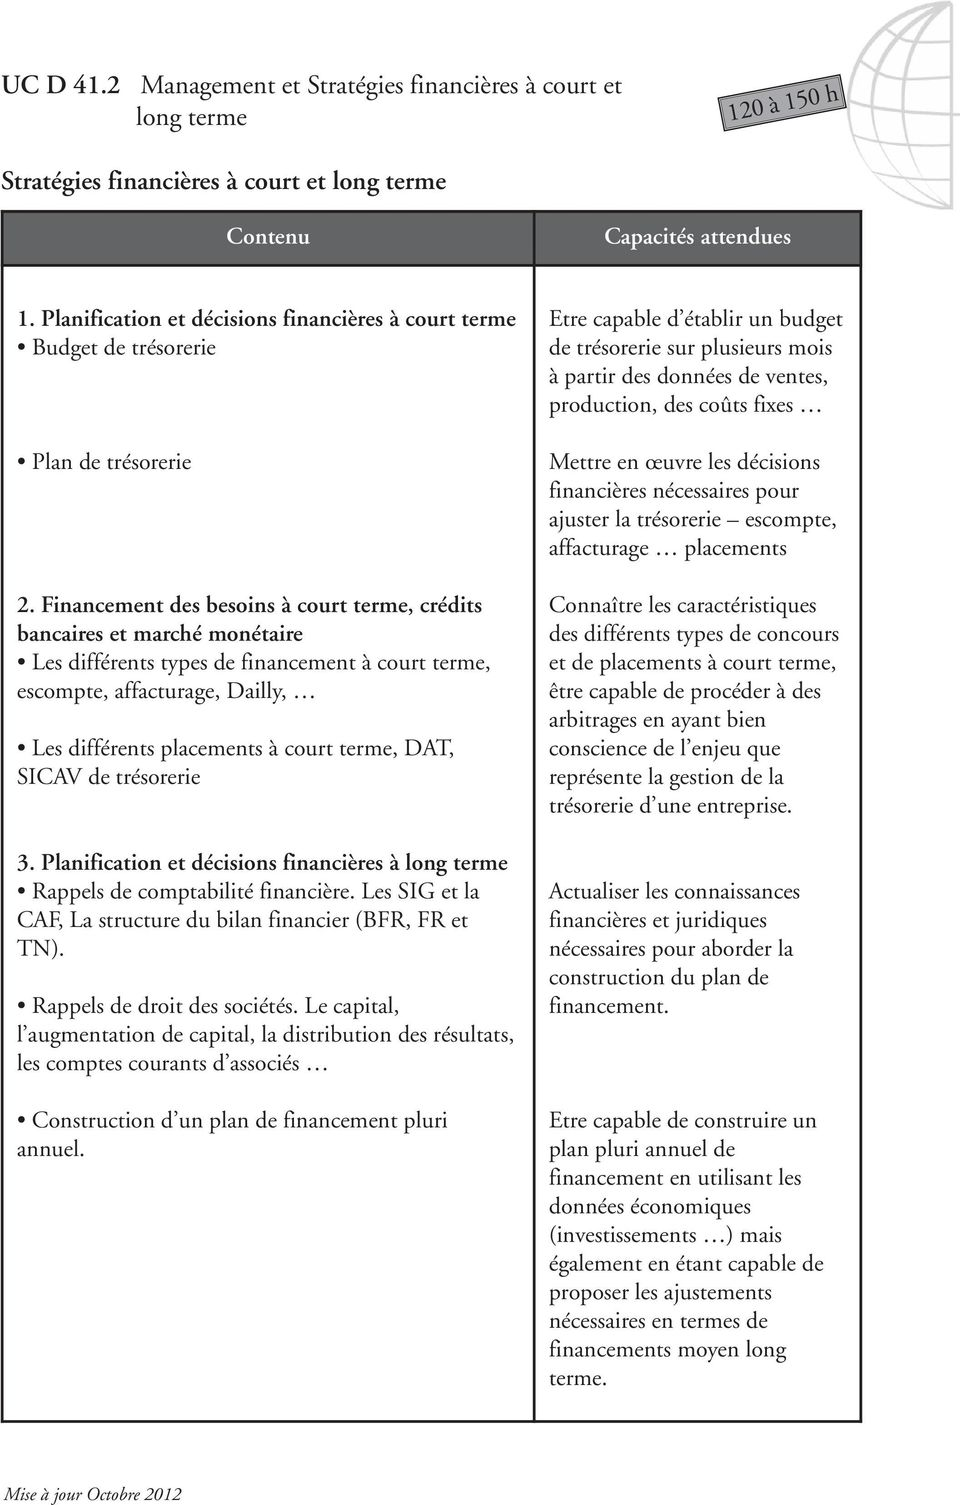 Financement des besoins à court terme, crédits bancaires et marché monétaire Les différents types de financement à court terme, escompte, affacturage, Dailly, Les différents placements à court terme,